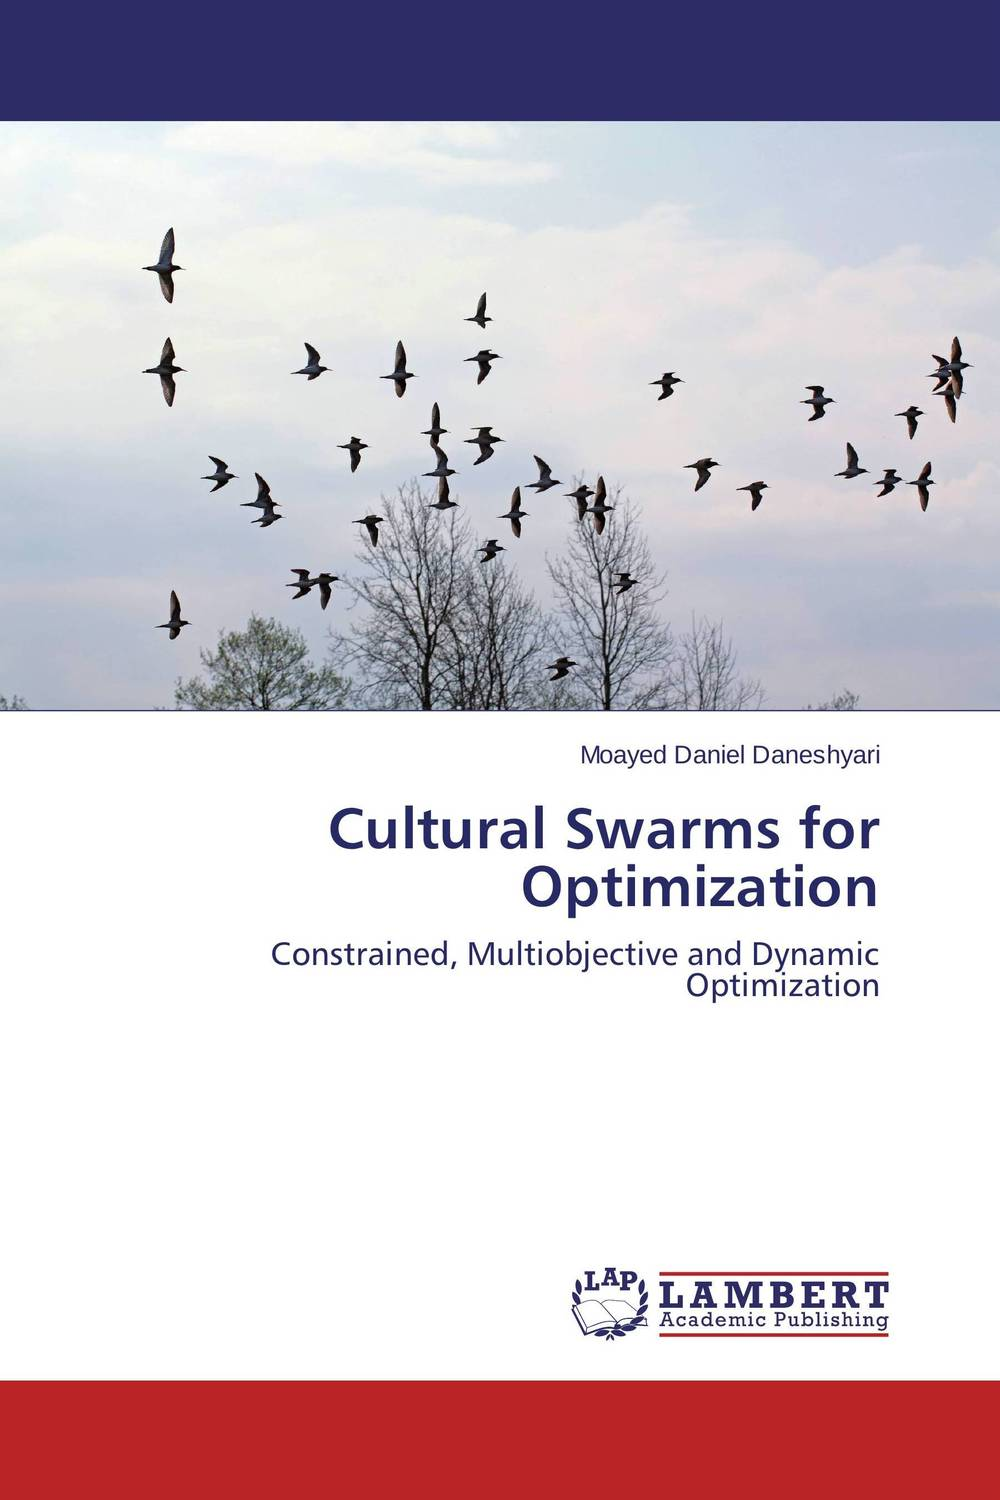 Cultural Swarms for Optimization